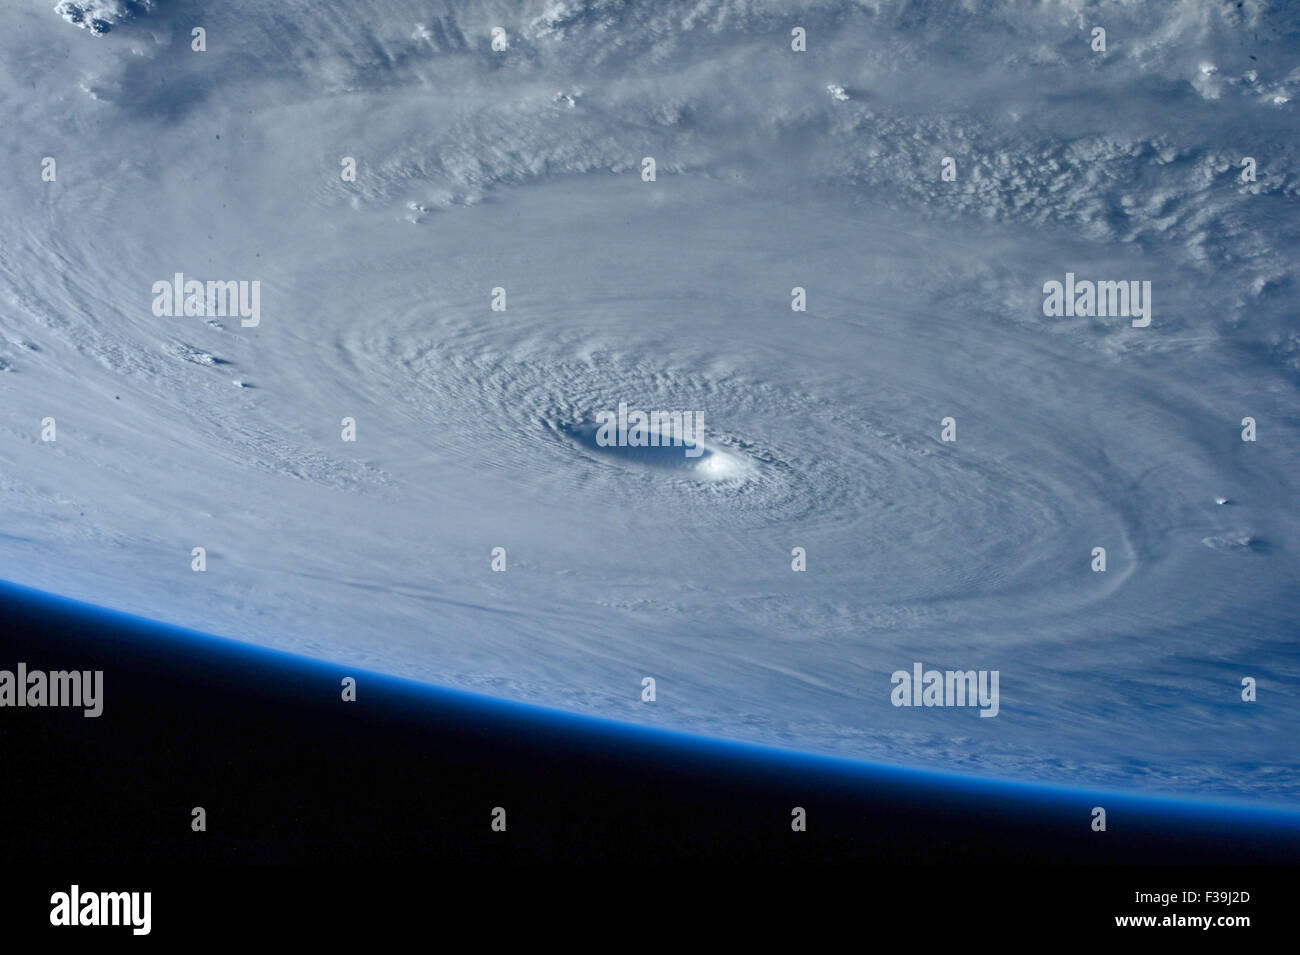 Typhoon Maysak strengthened into a super typhoon on March 31, reaching Category 5 hurricane status on the Saffir - Stock Image